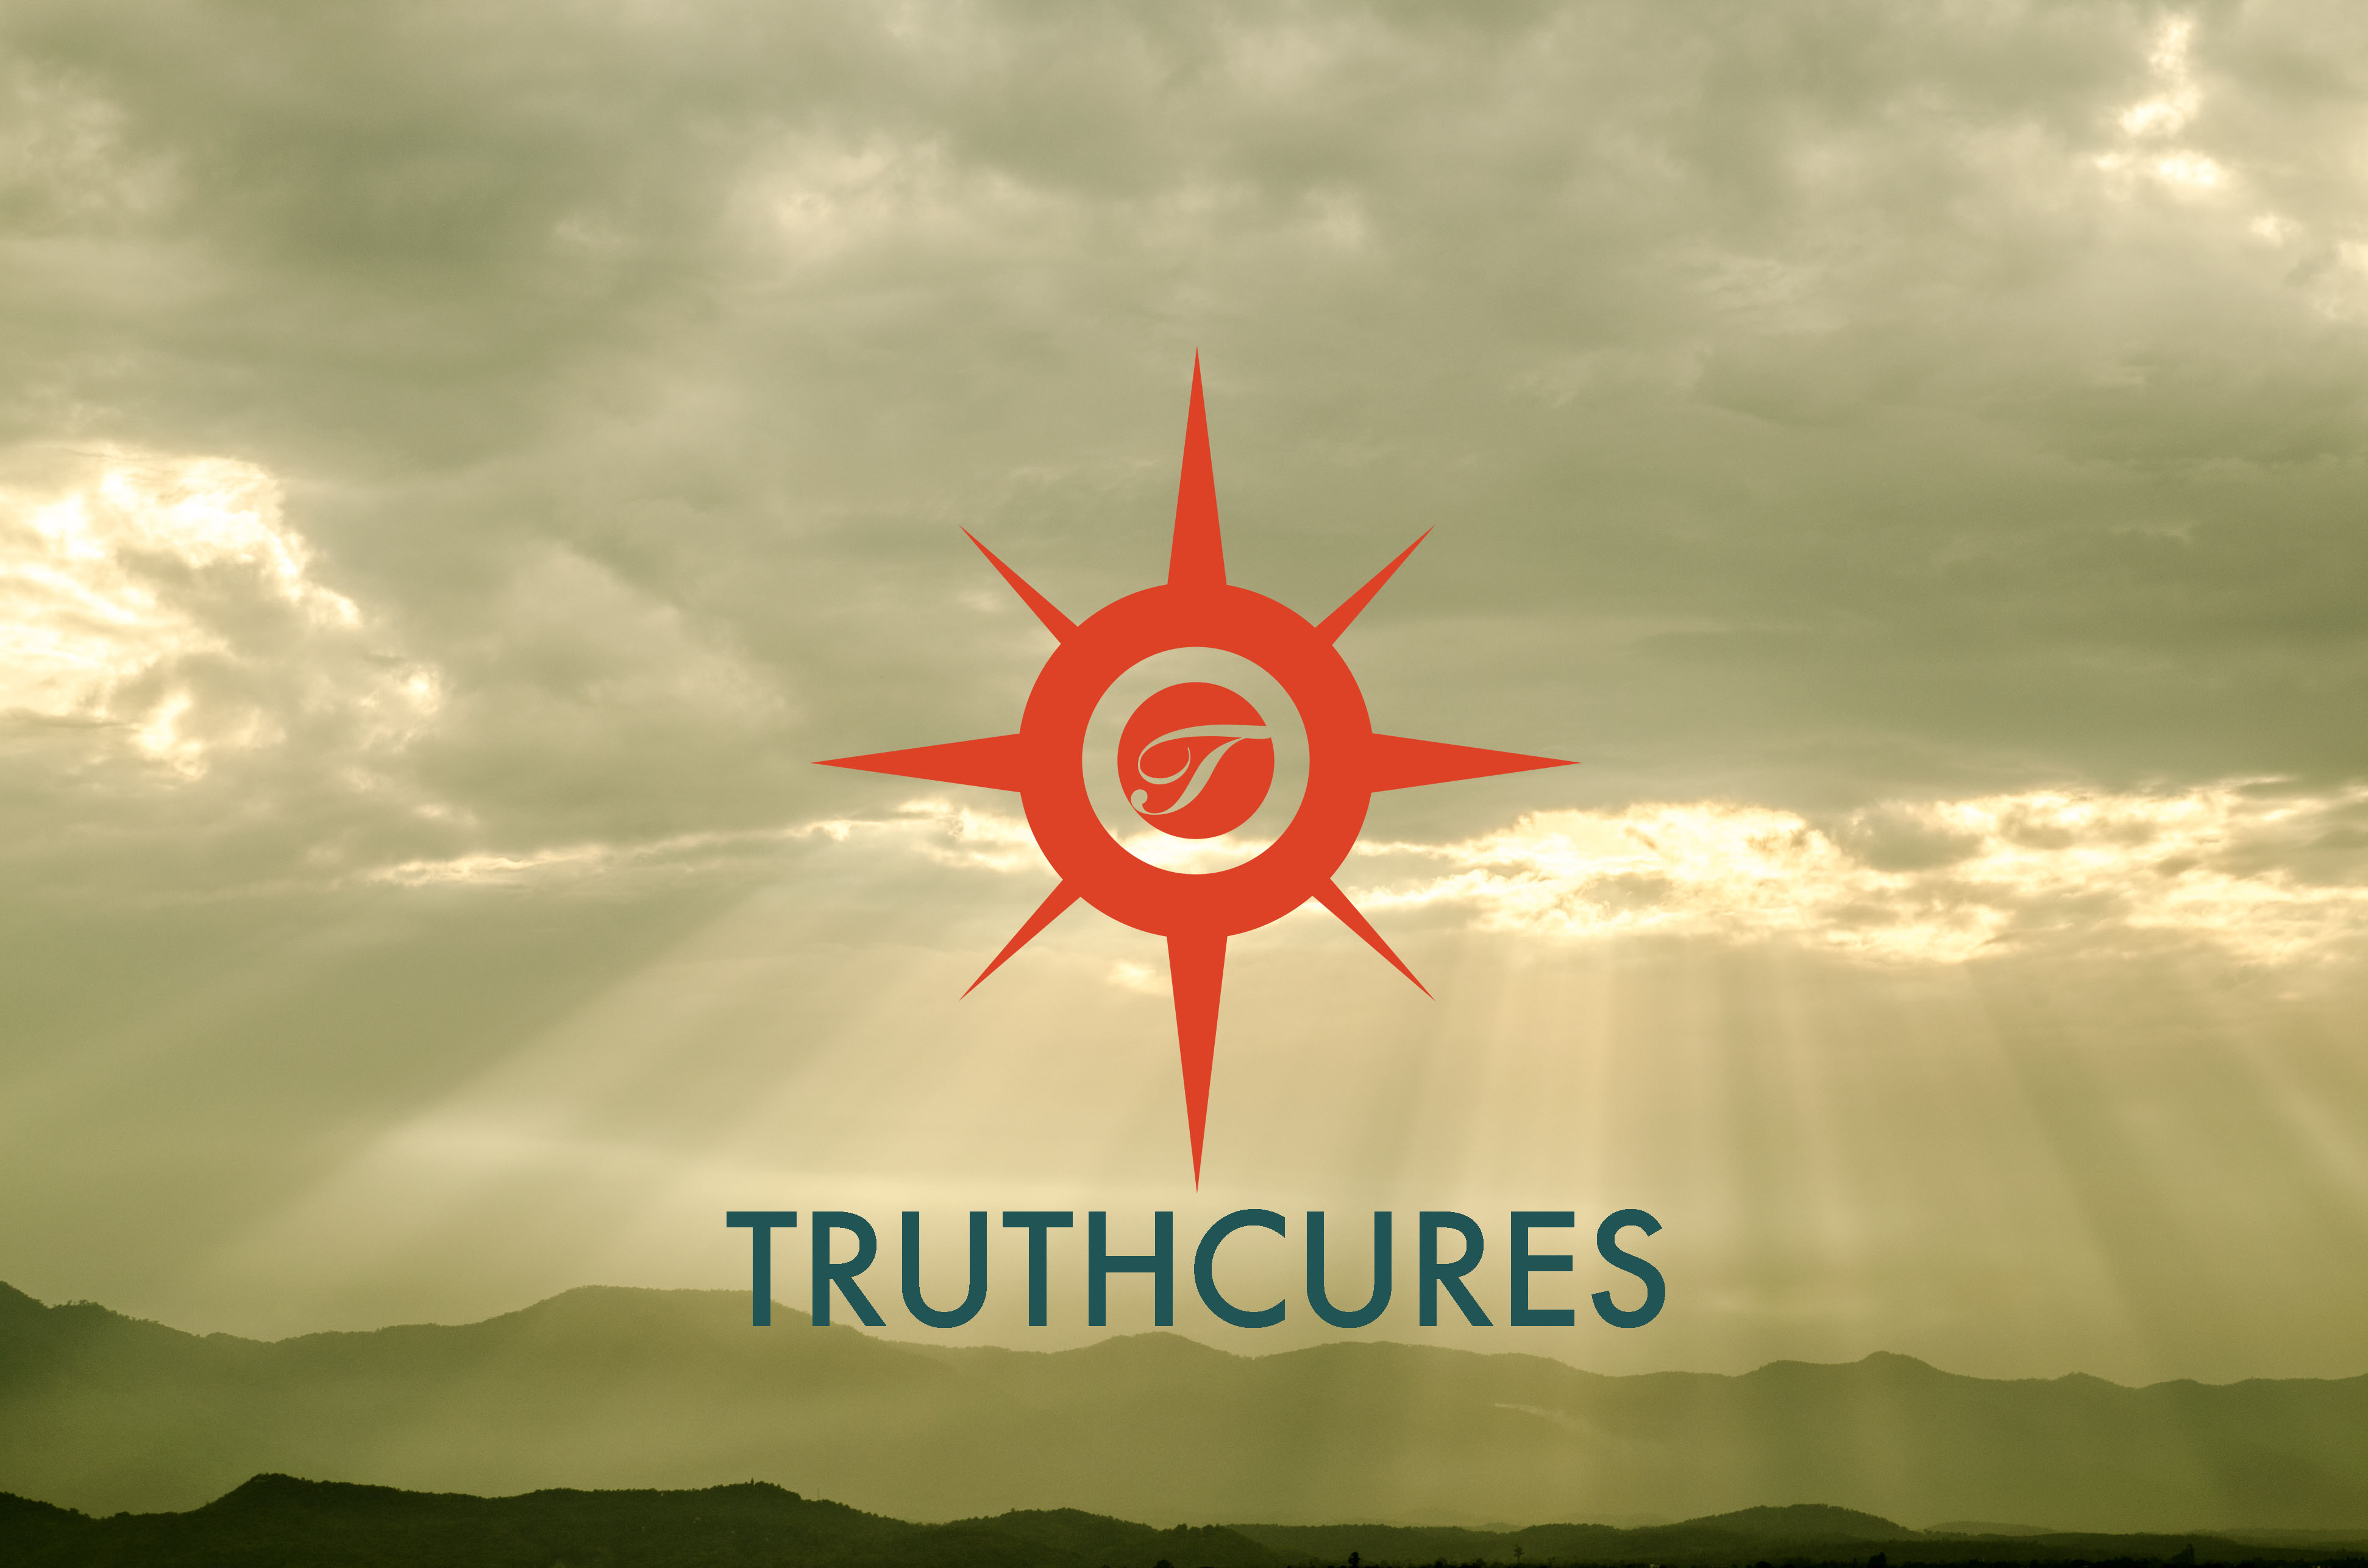 Truthcures | Justice in Healthcare